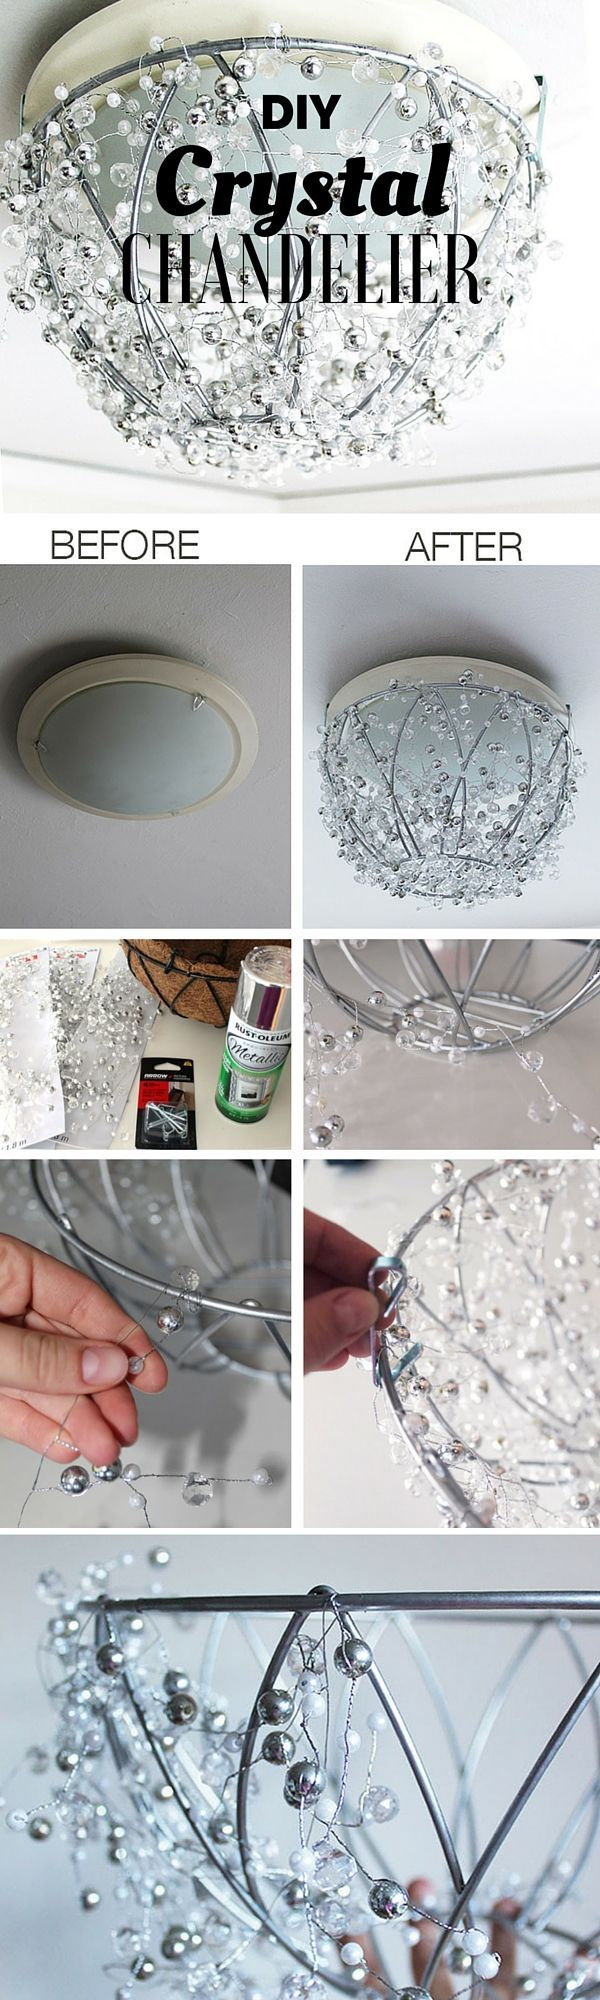 Check out the tutorial: #DIY Crystal Chandelier @istandarddesign                                                                                                                                                                                 More